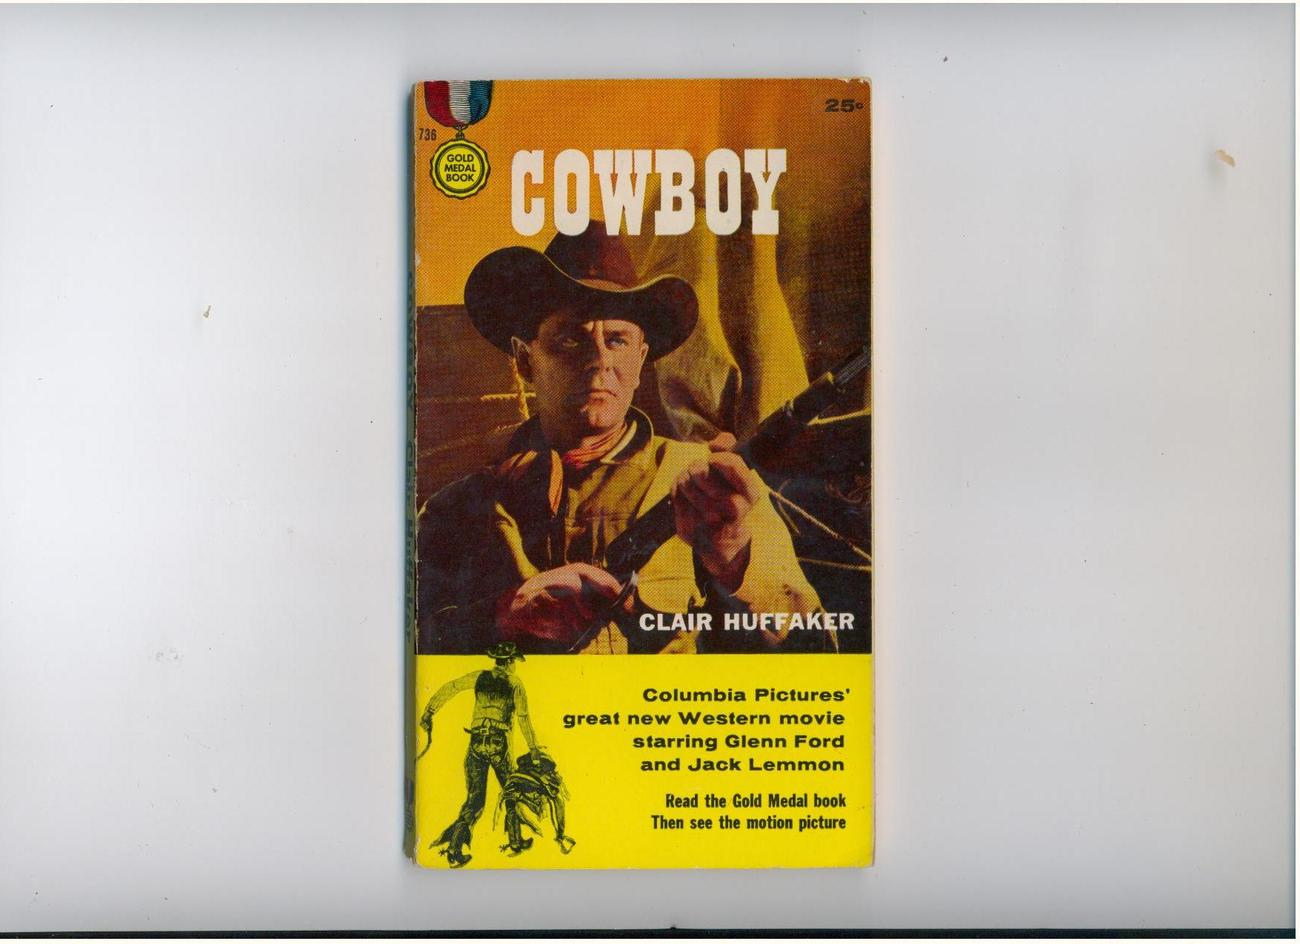 Huffaker - COWBOY - 1958 1st printing - movie tie-in